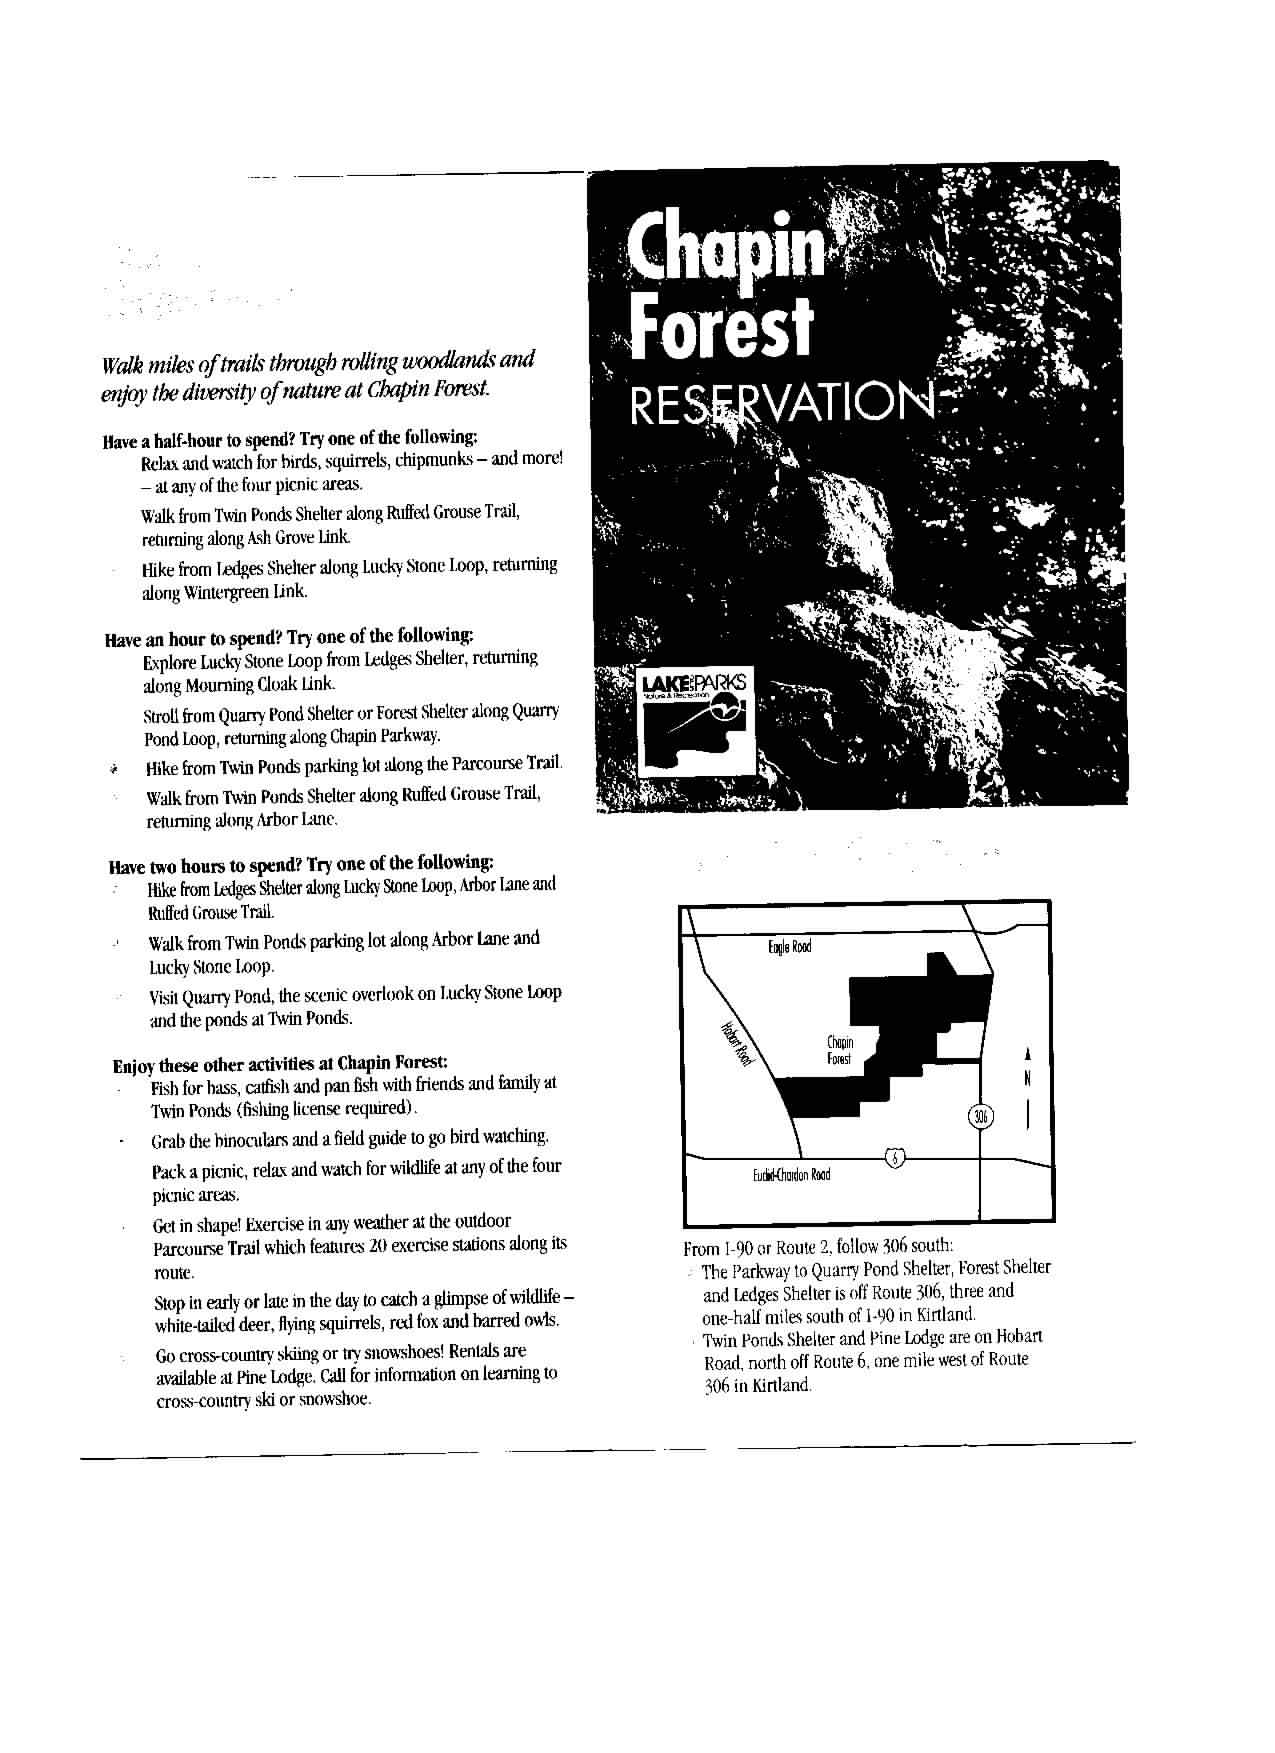 Chapin Forest Reservation Brochure Part 1